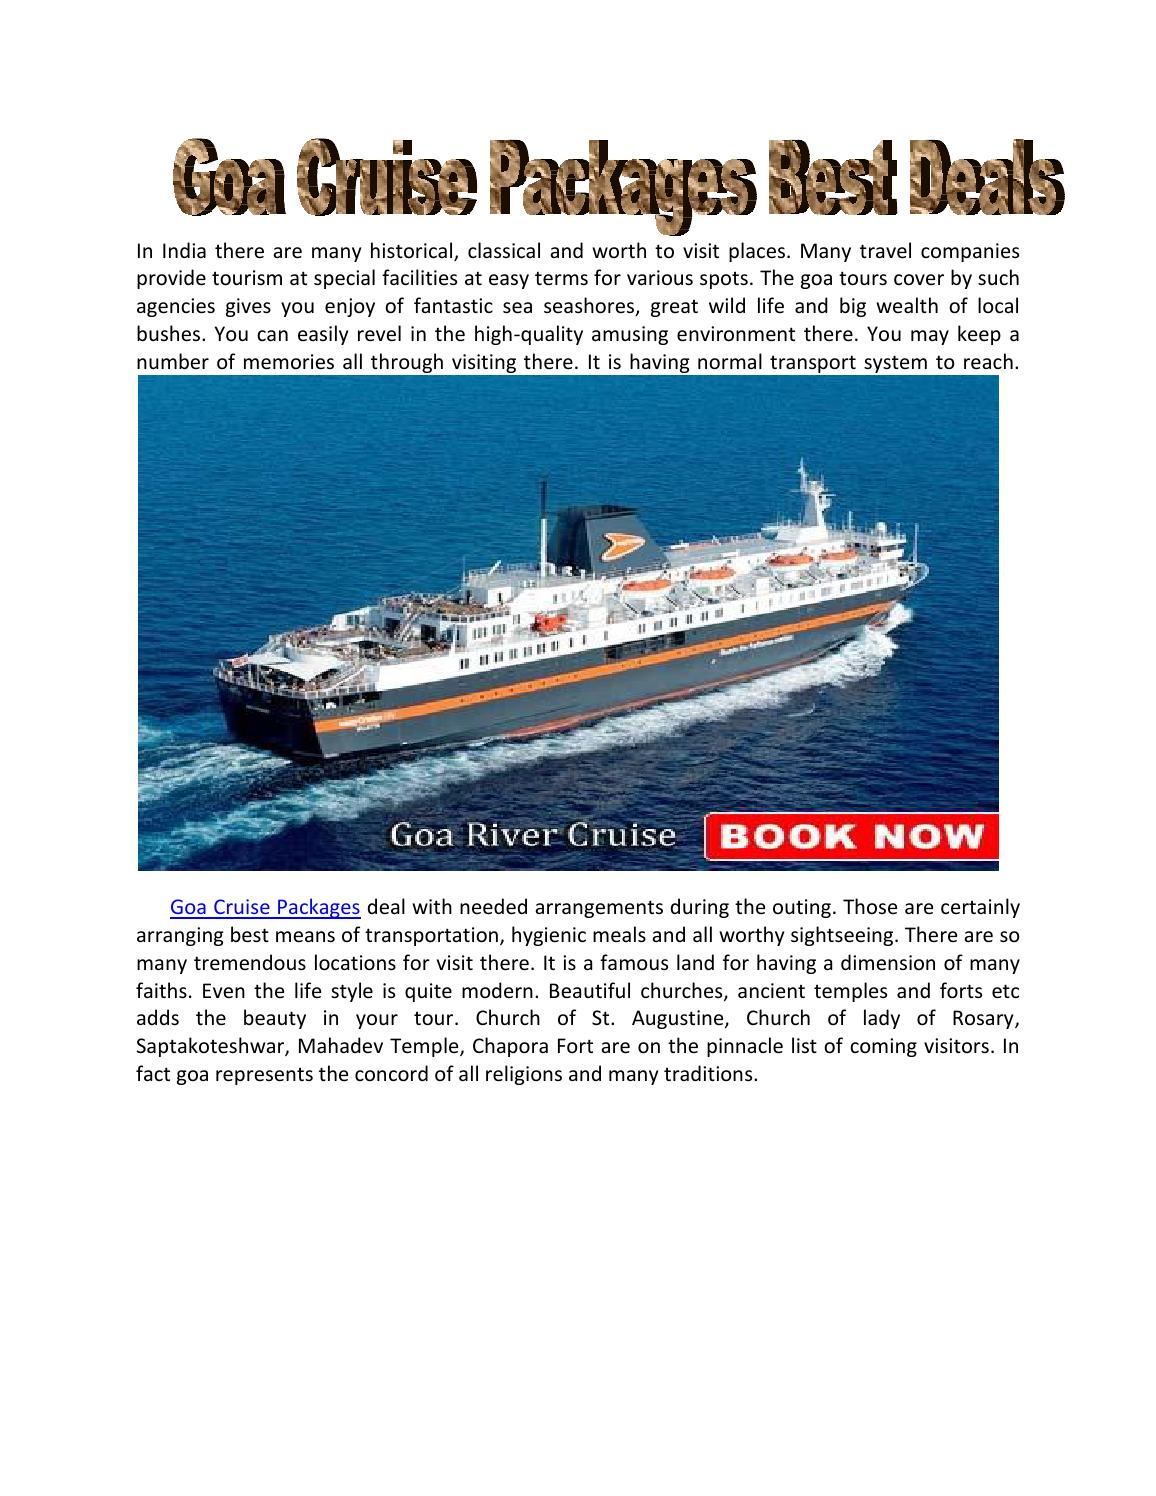 Best Goa Cruise Packages At Cheapest Price By